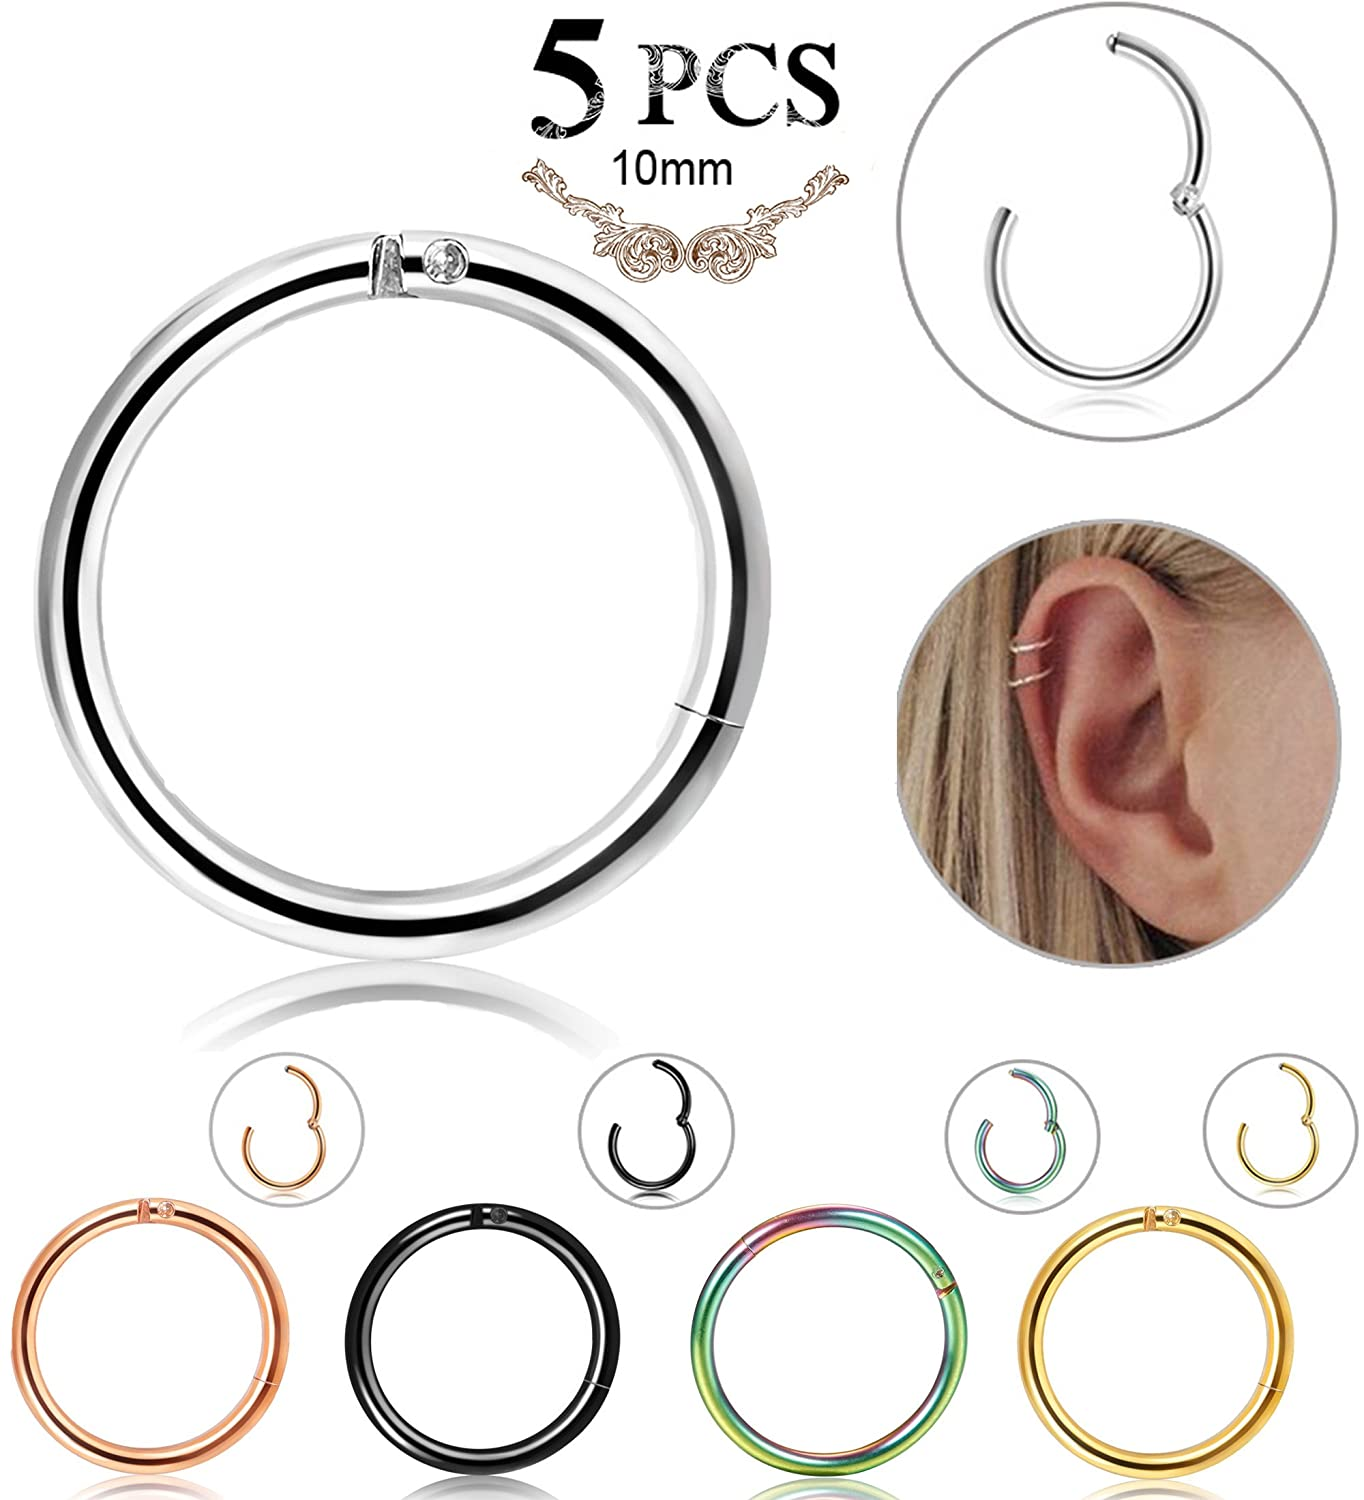 LOLIAS 5 Pcs 16g Stainless Steel Cartilage Earrings for Men Women Nose Hoop Ring Helix Septum Couch Daith Lip Tragus Piercing Jewelry L-CPC-SE5-8